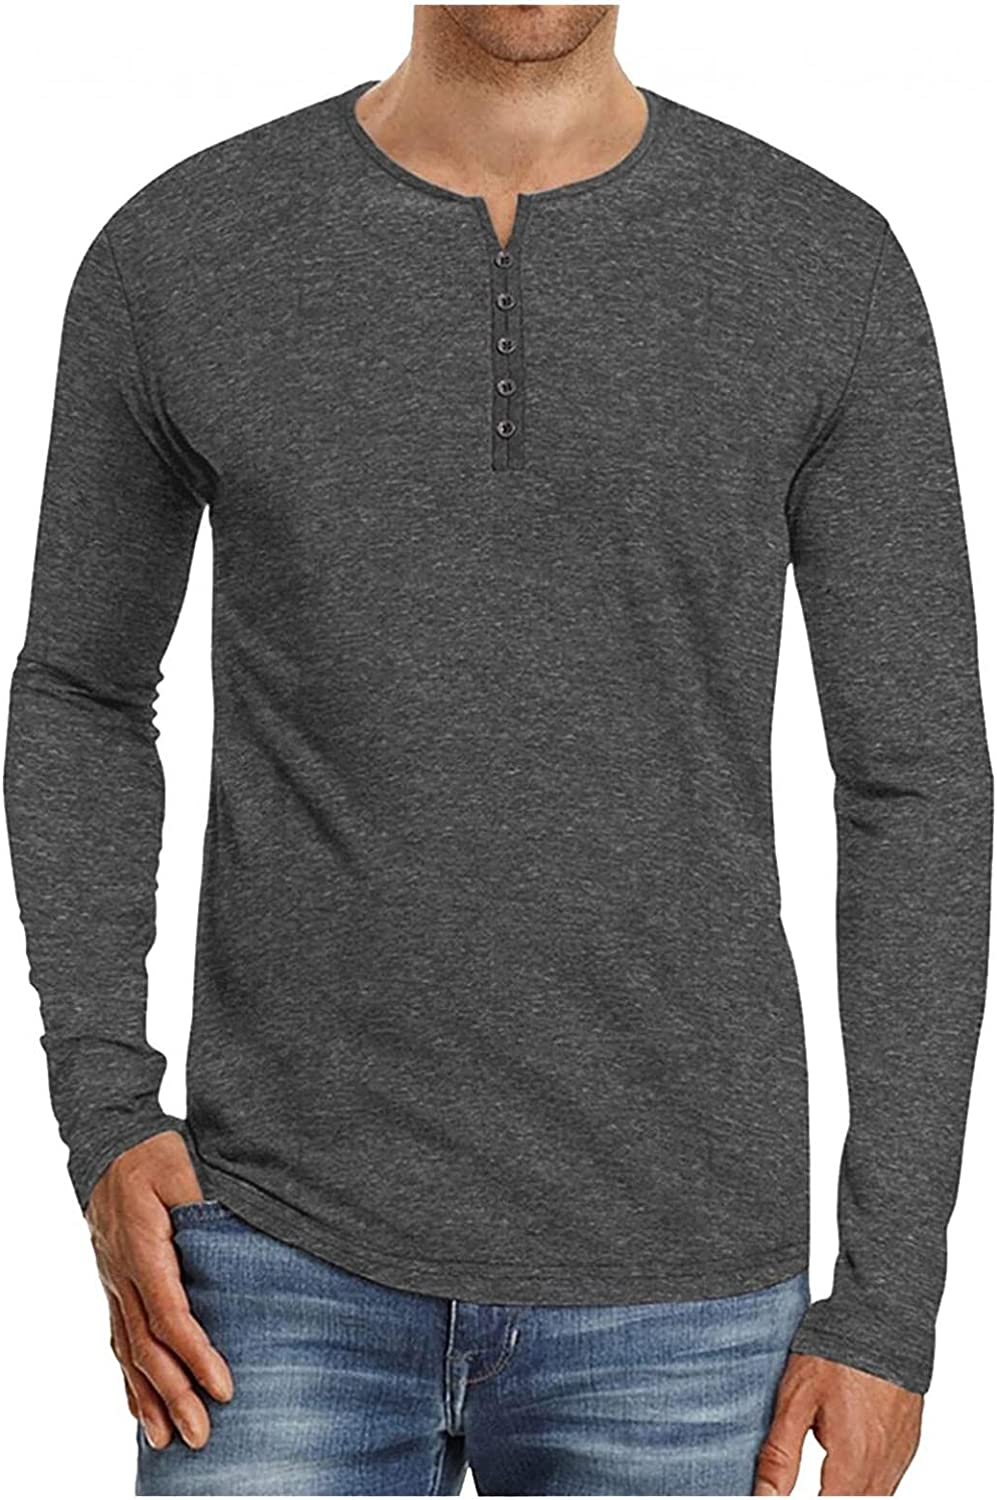 Burband Mens Casual Front Placket Basic Long Sleeve Henley T Shirts Slim Fit Lightweight Cotton Fashion Tops Big and Tall